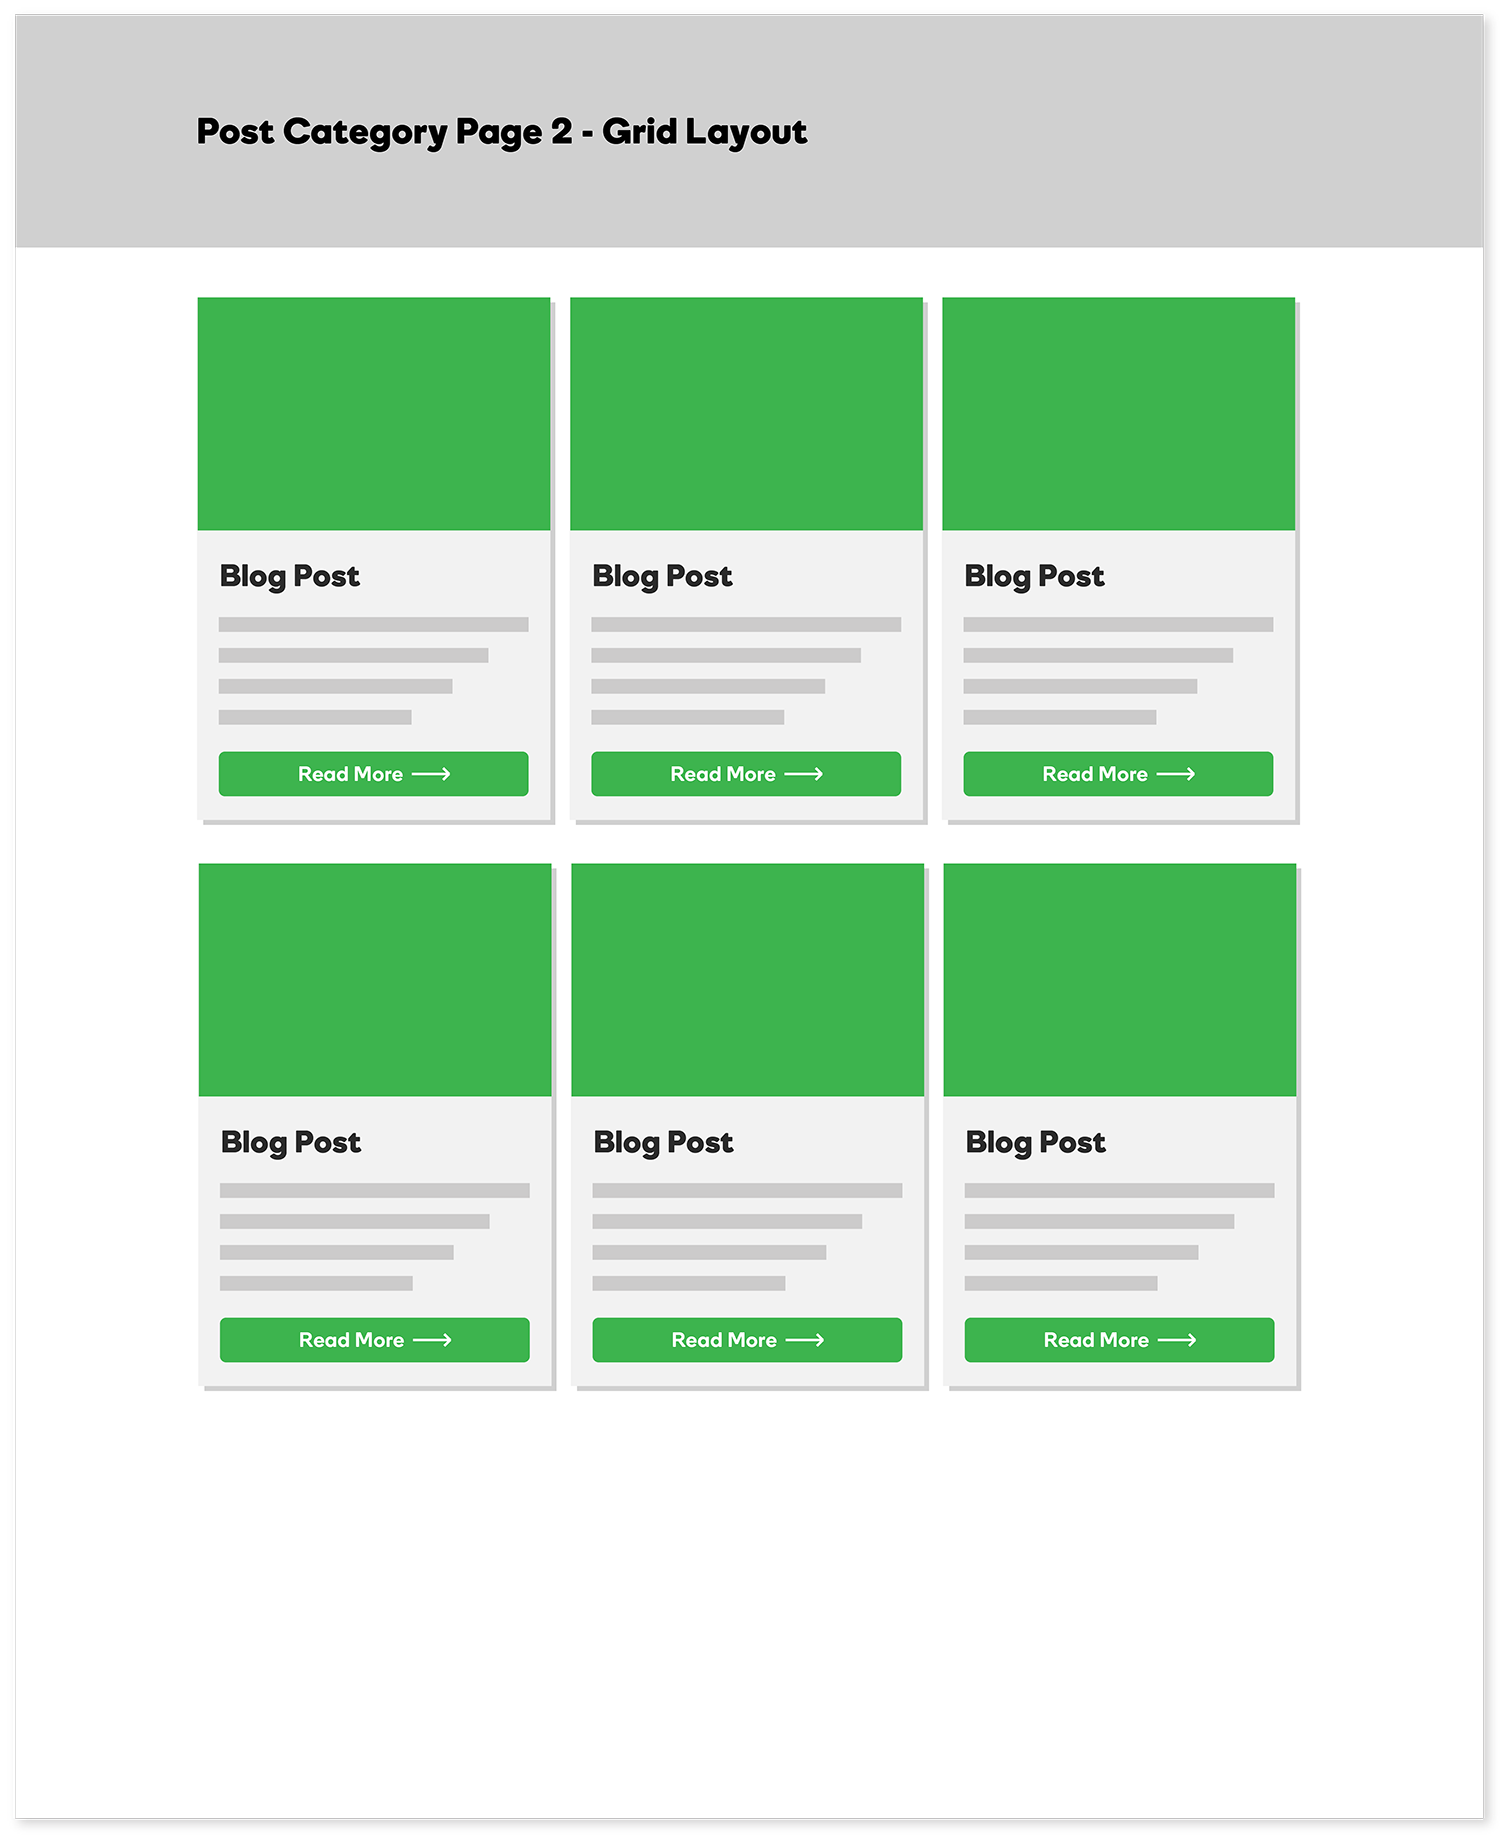 Post Category Page - Grid